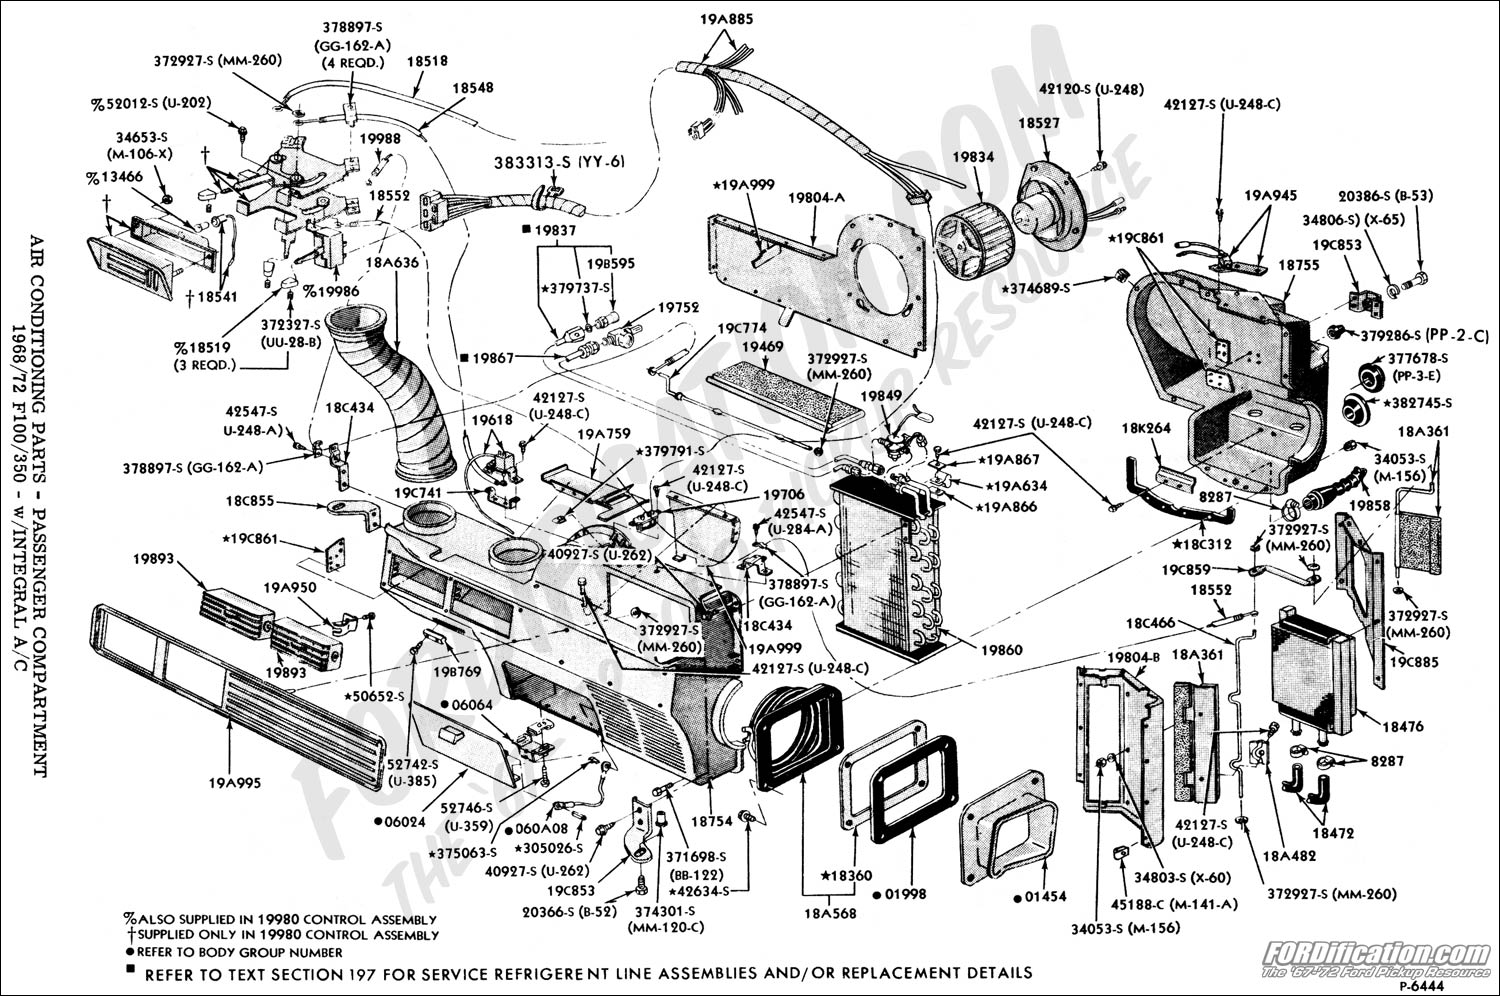 Schematics_f on 1958 Ford Fairlane Wiring Diagram